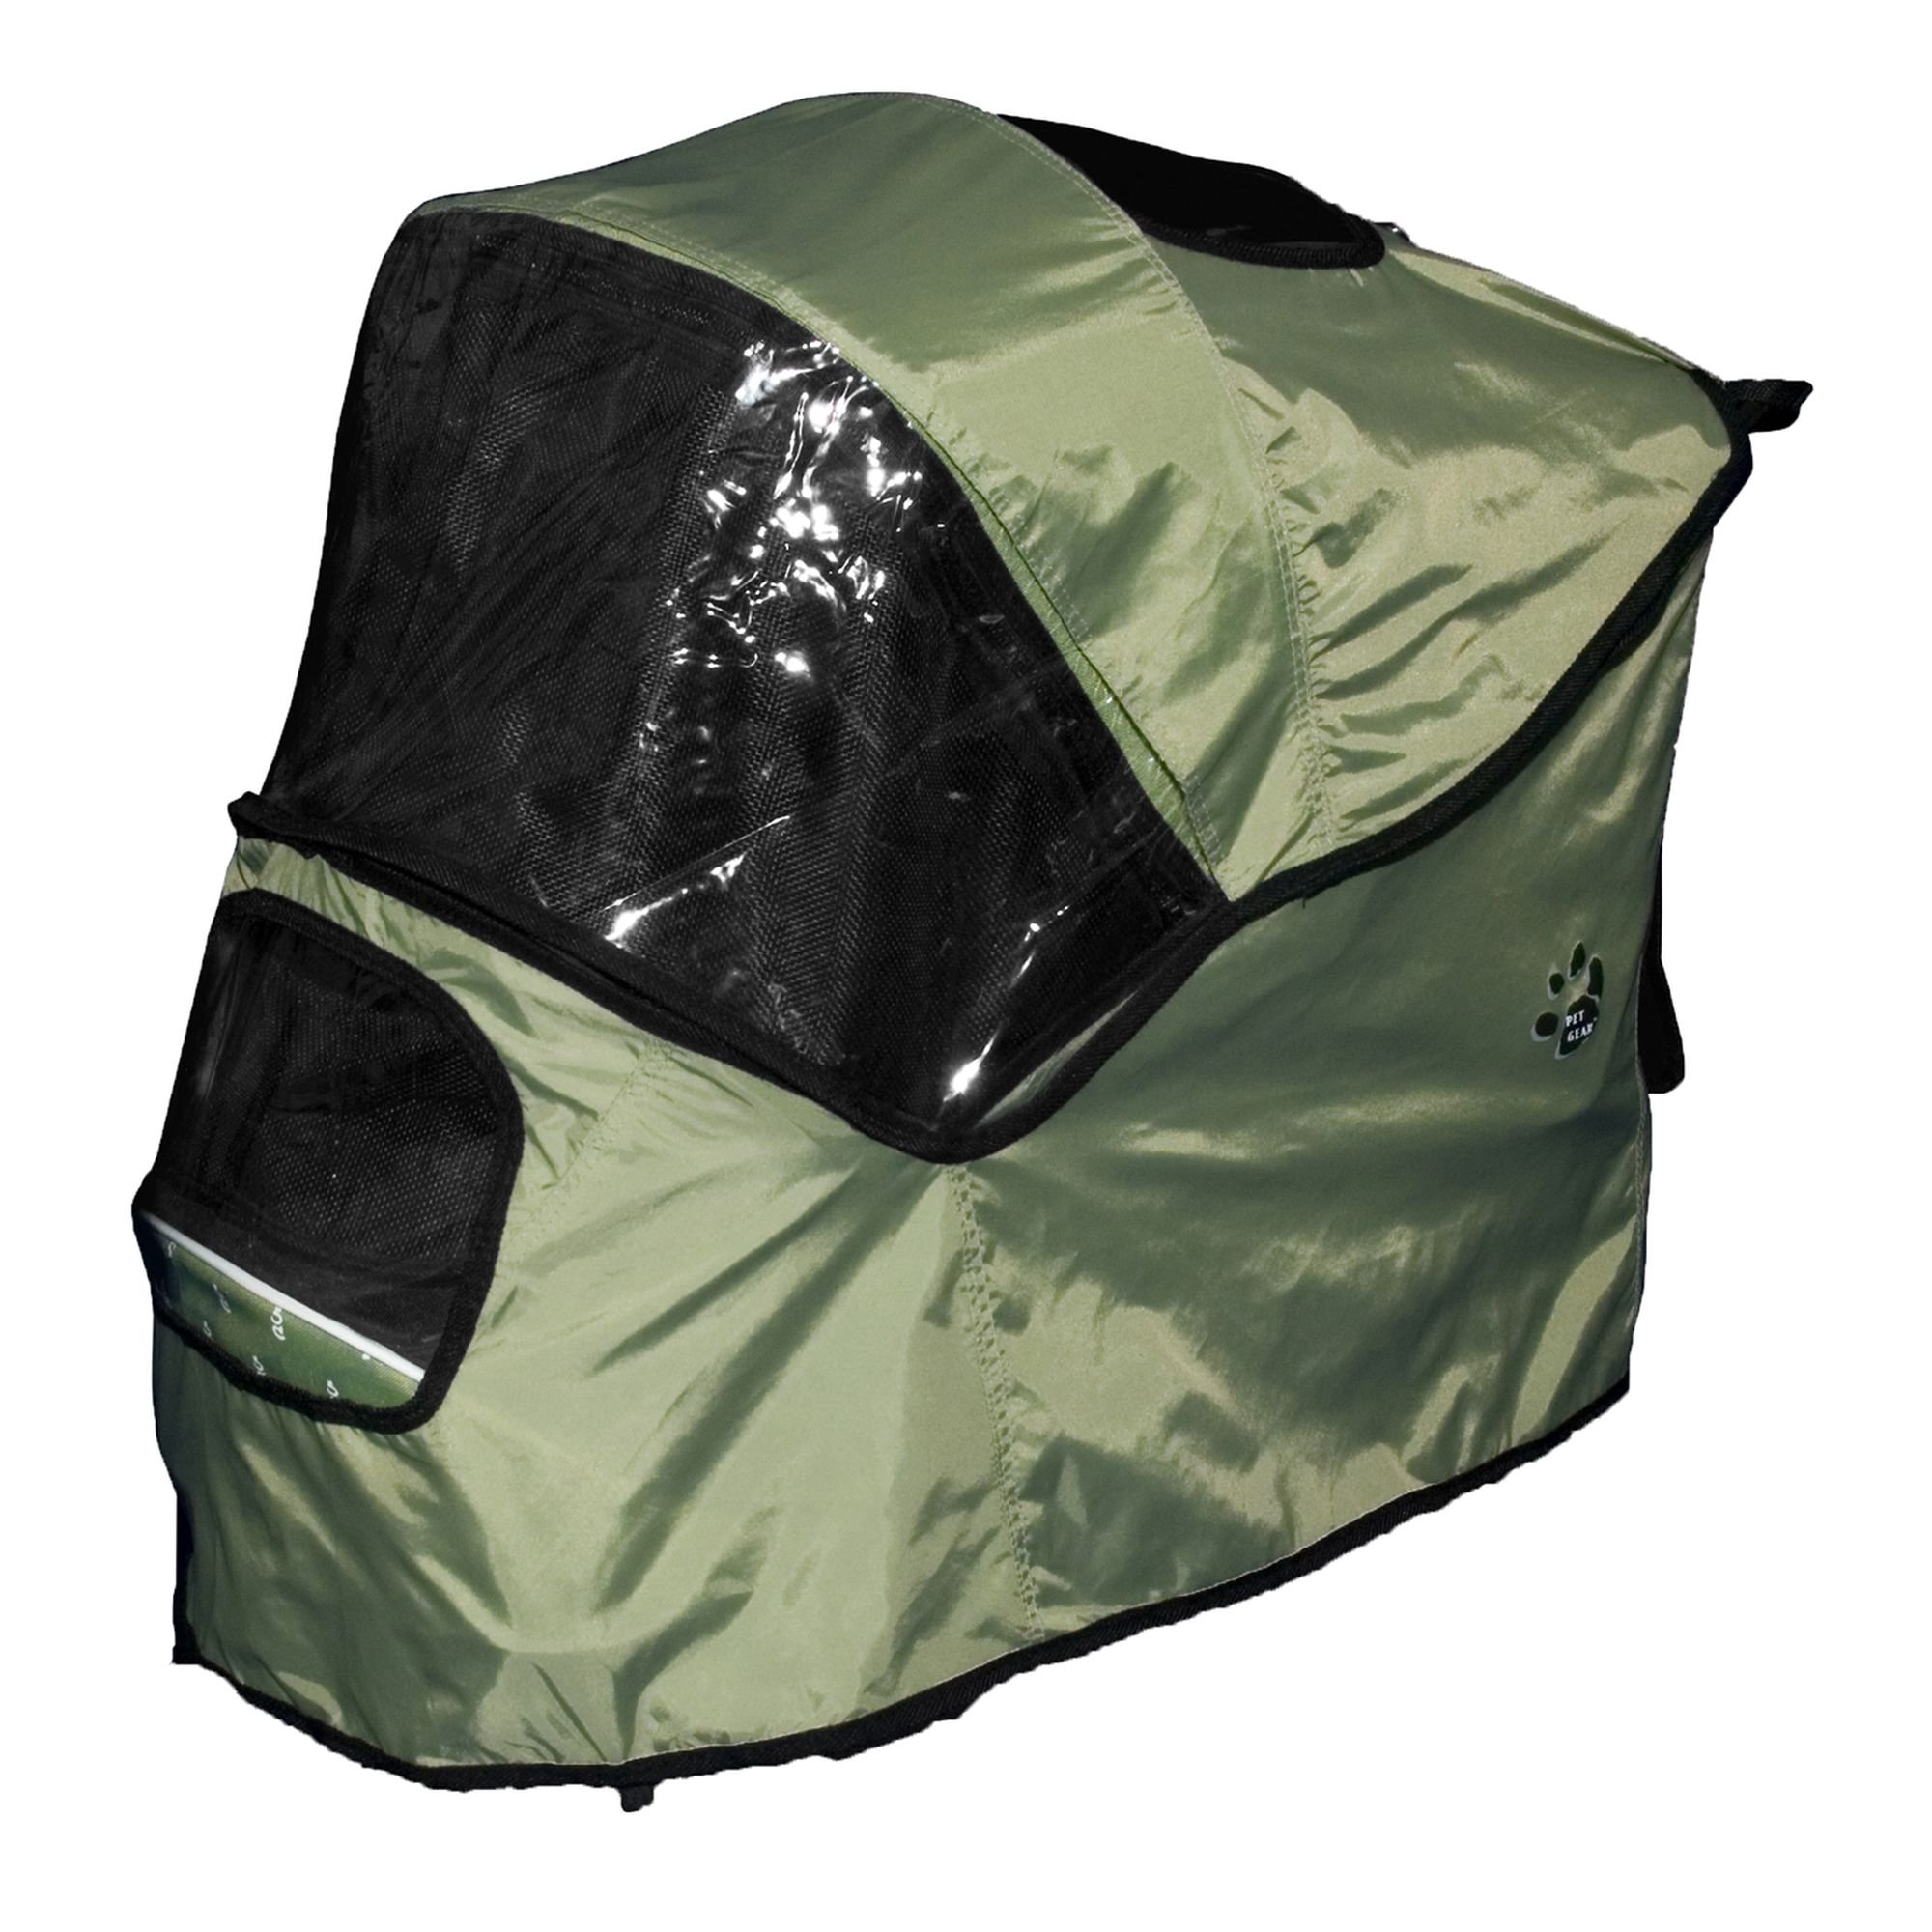 Pet Gear Weather Cover for Special Edition Pet Stroller, Sage